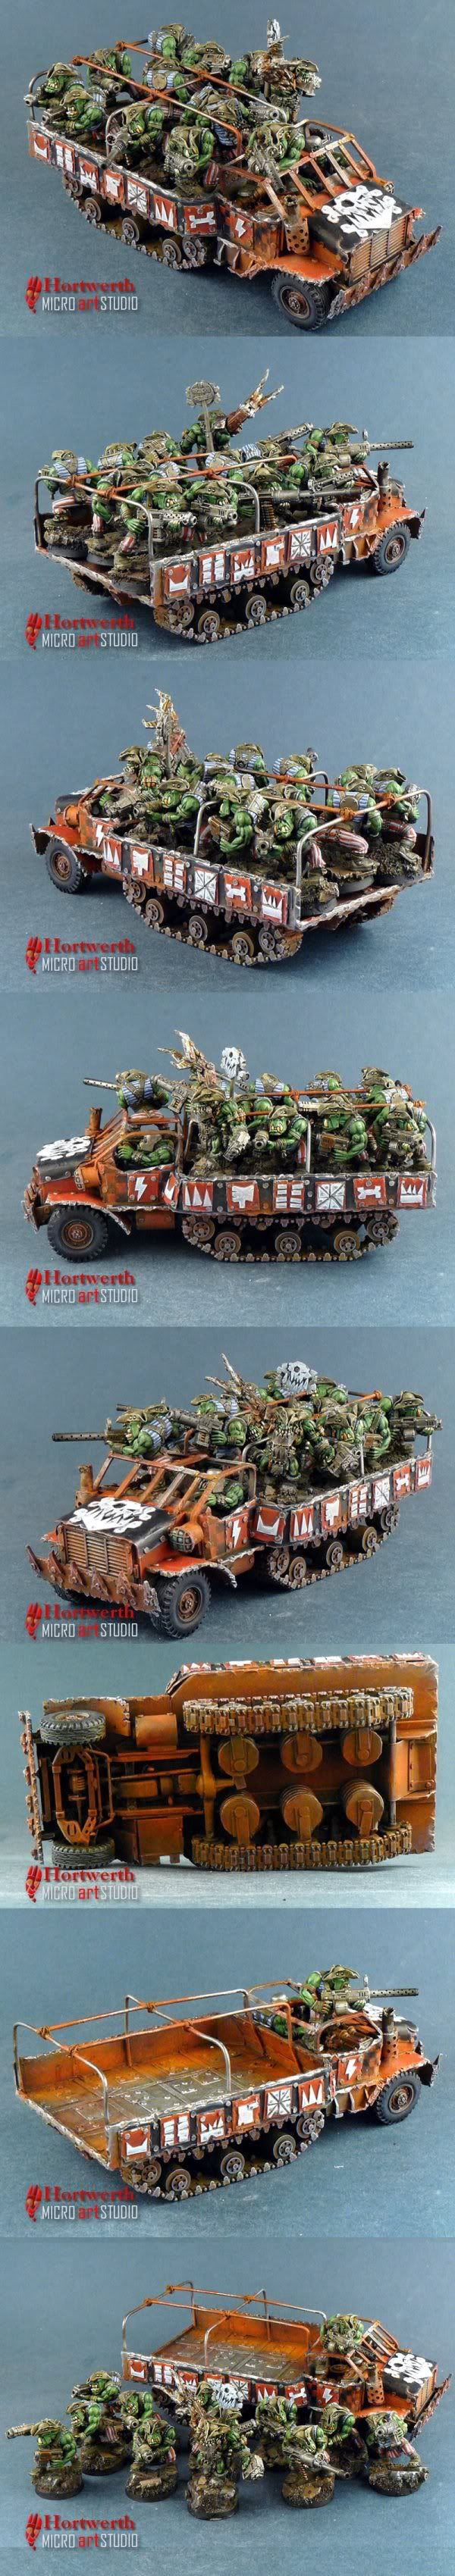 Freebotaz Orks in scratchbuilt trukk